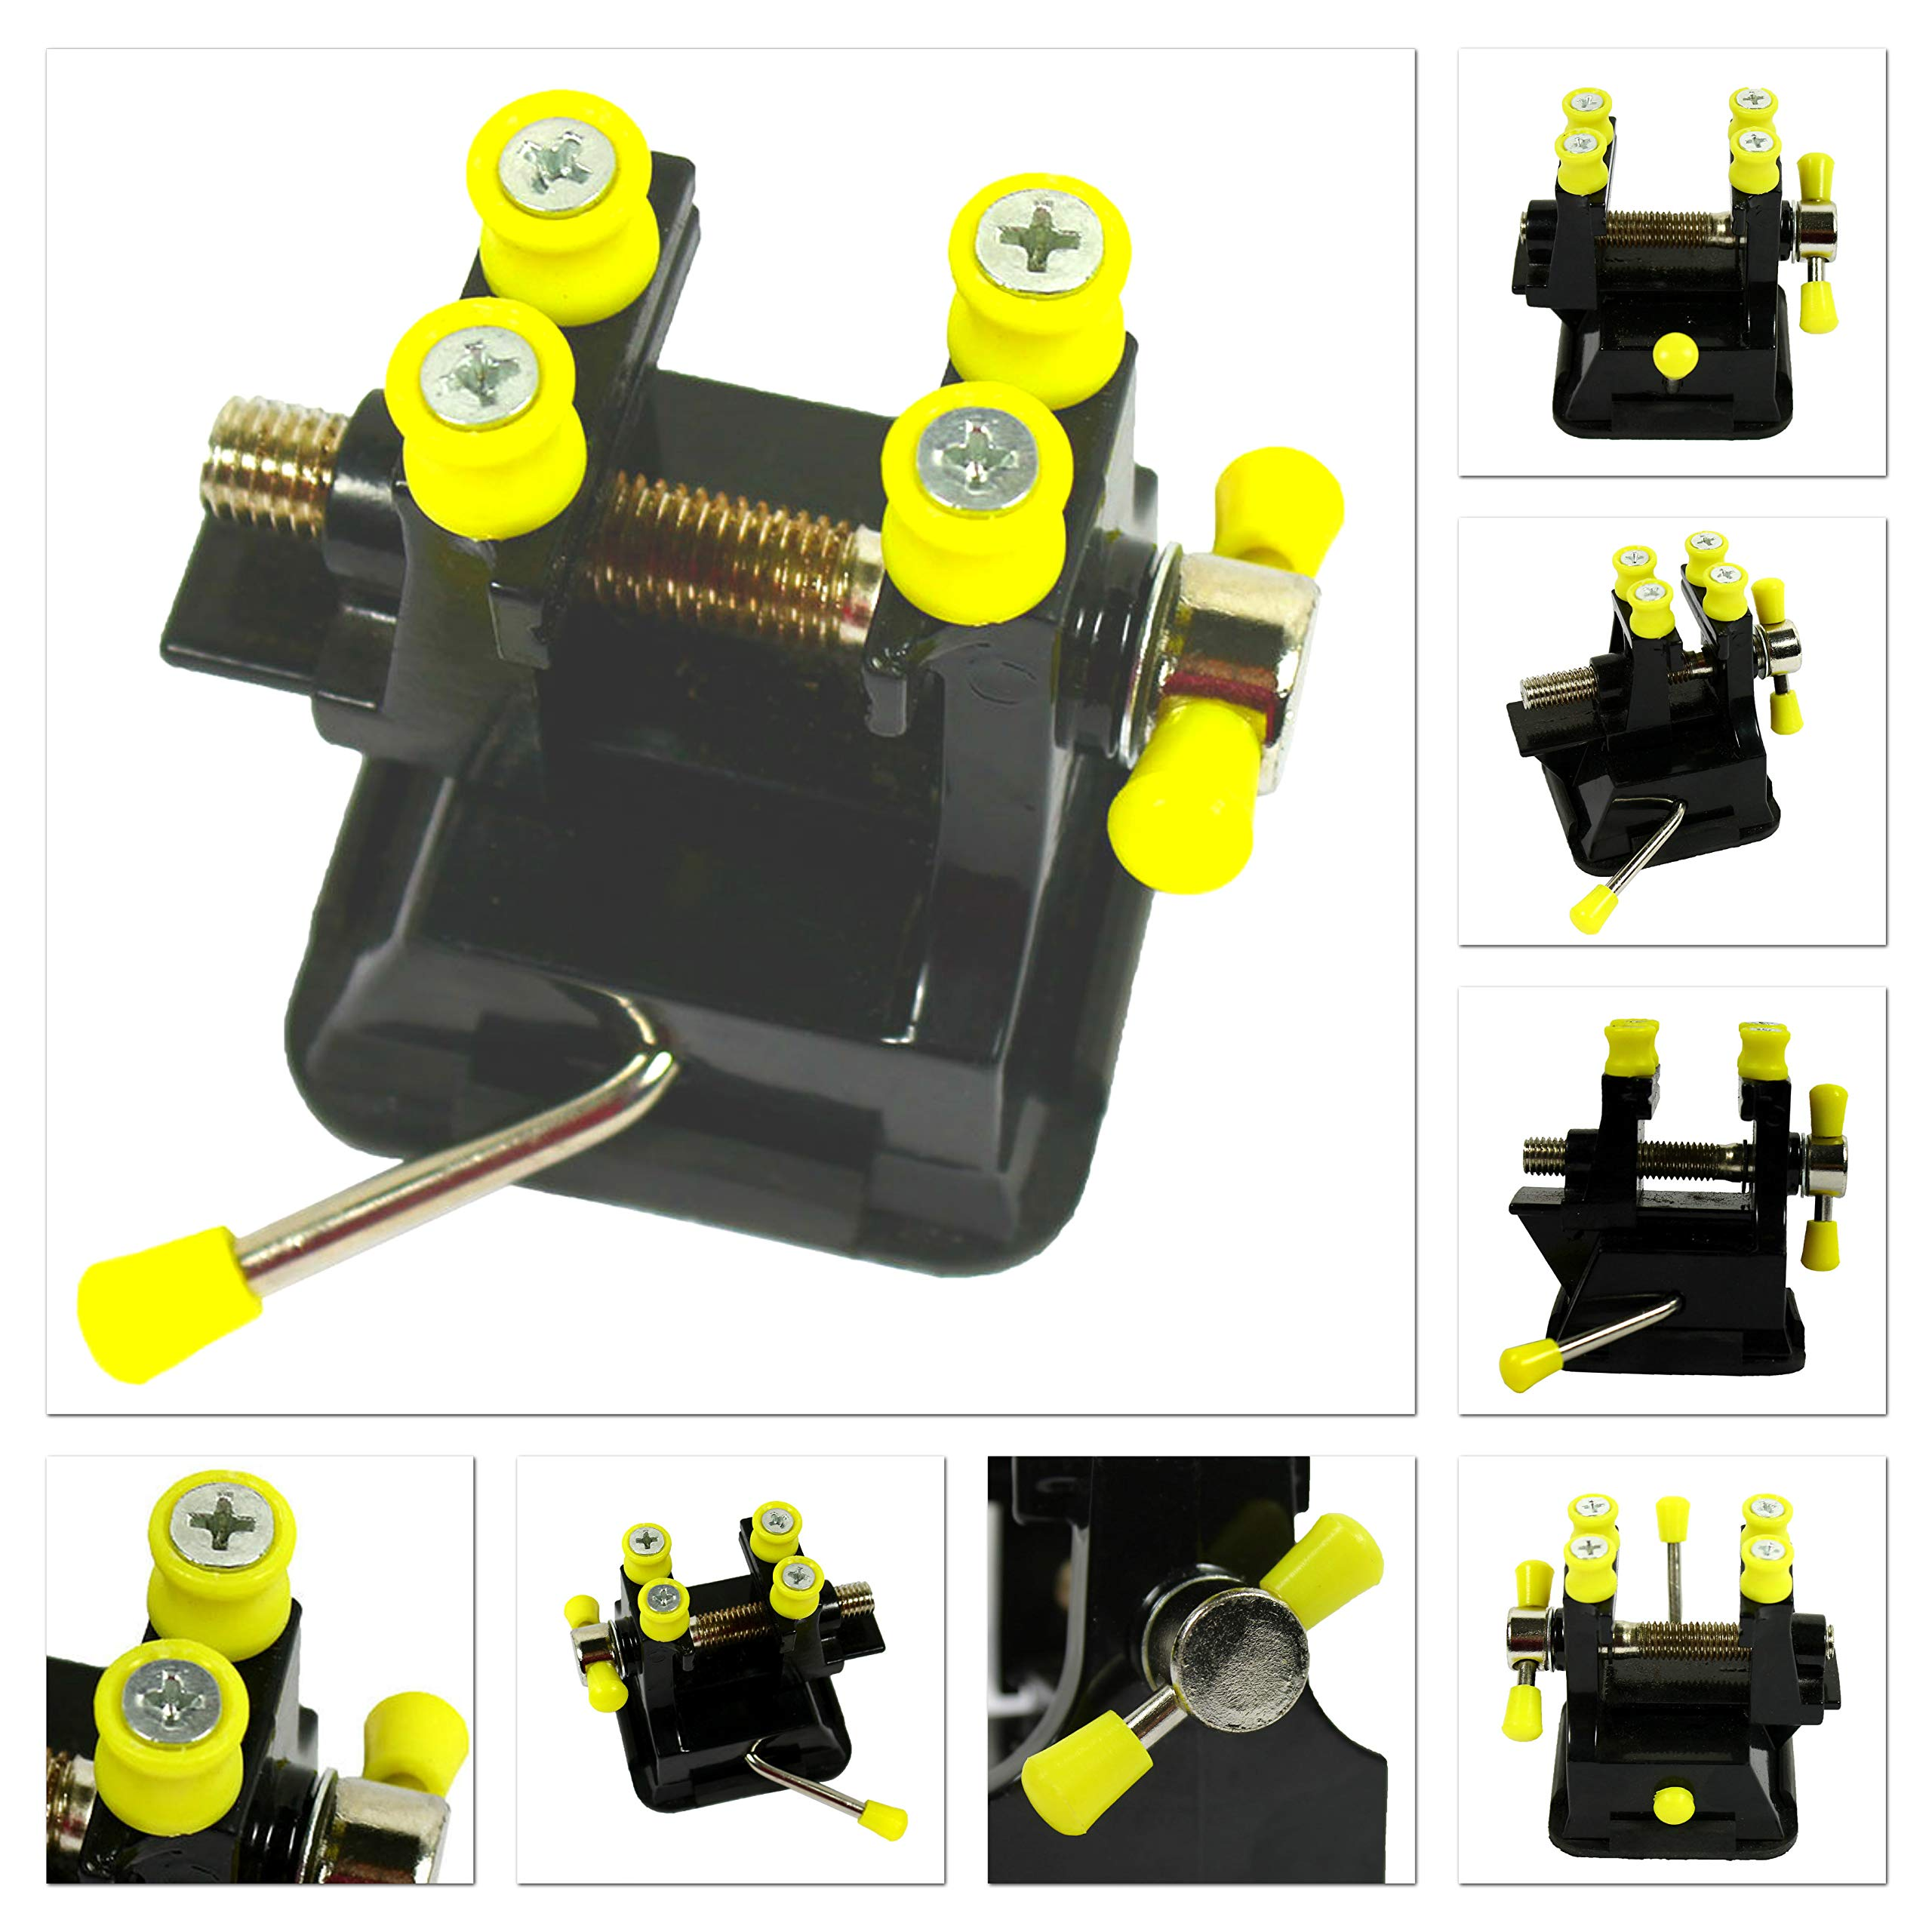 Miniature Vise Small Jewelers Hobby Clamp On Table Bench Tool Vice, Suction Cup Non-Scratching, DIY Jewelry Craft Model Repair By YOLO Stores